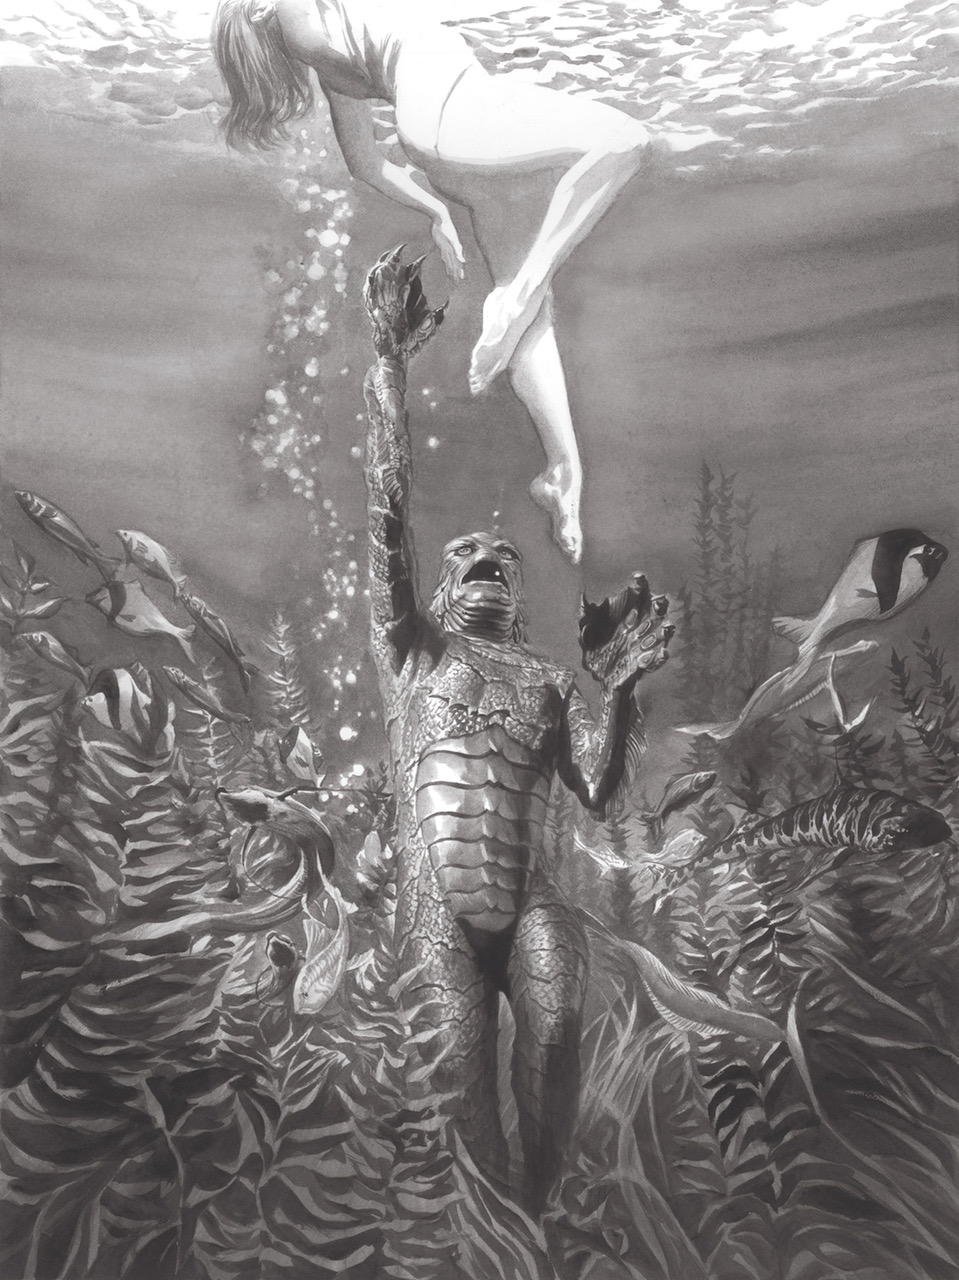 f4e845be6bc Creature From the Black Lagoon Universal Monsters Giclee on Canvas by ...